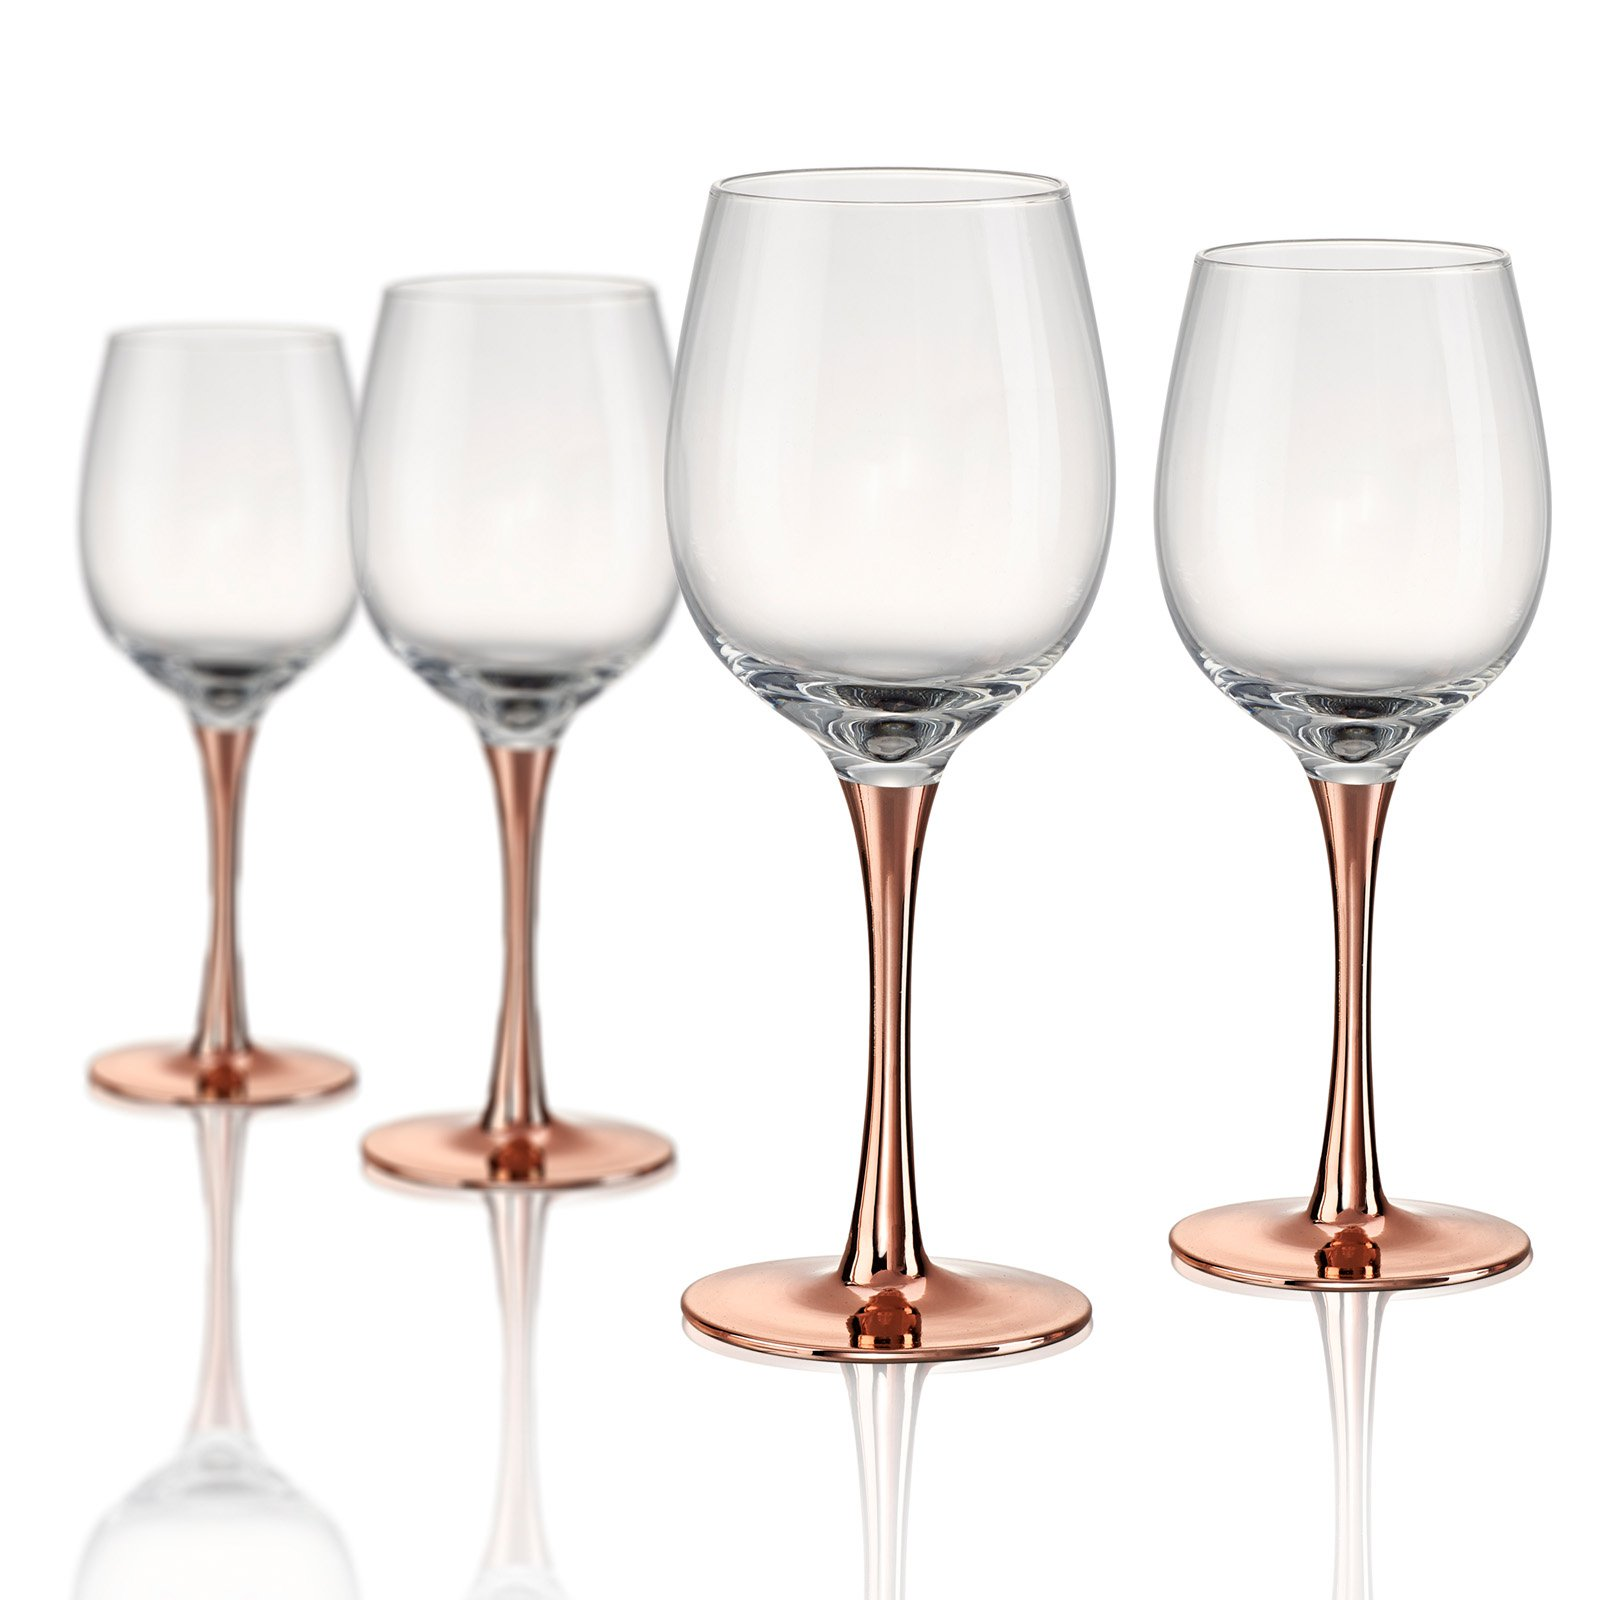 Artland Coppertino Wine Glass - Set of 4